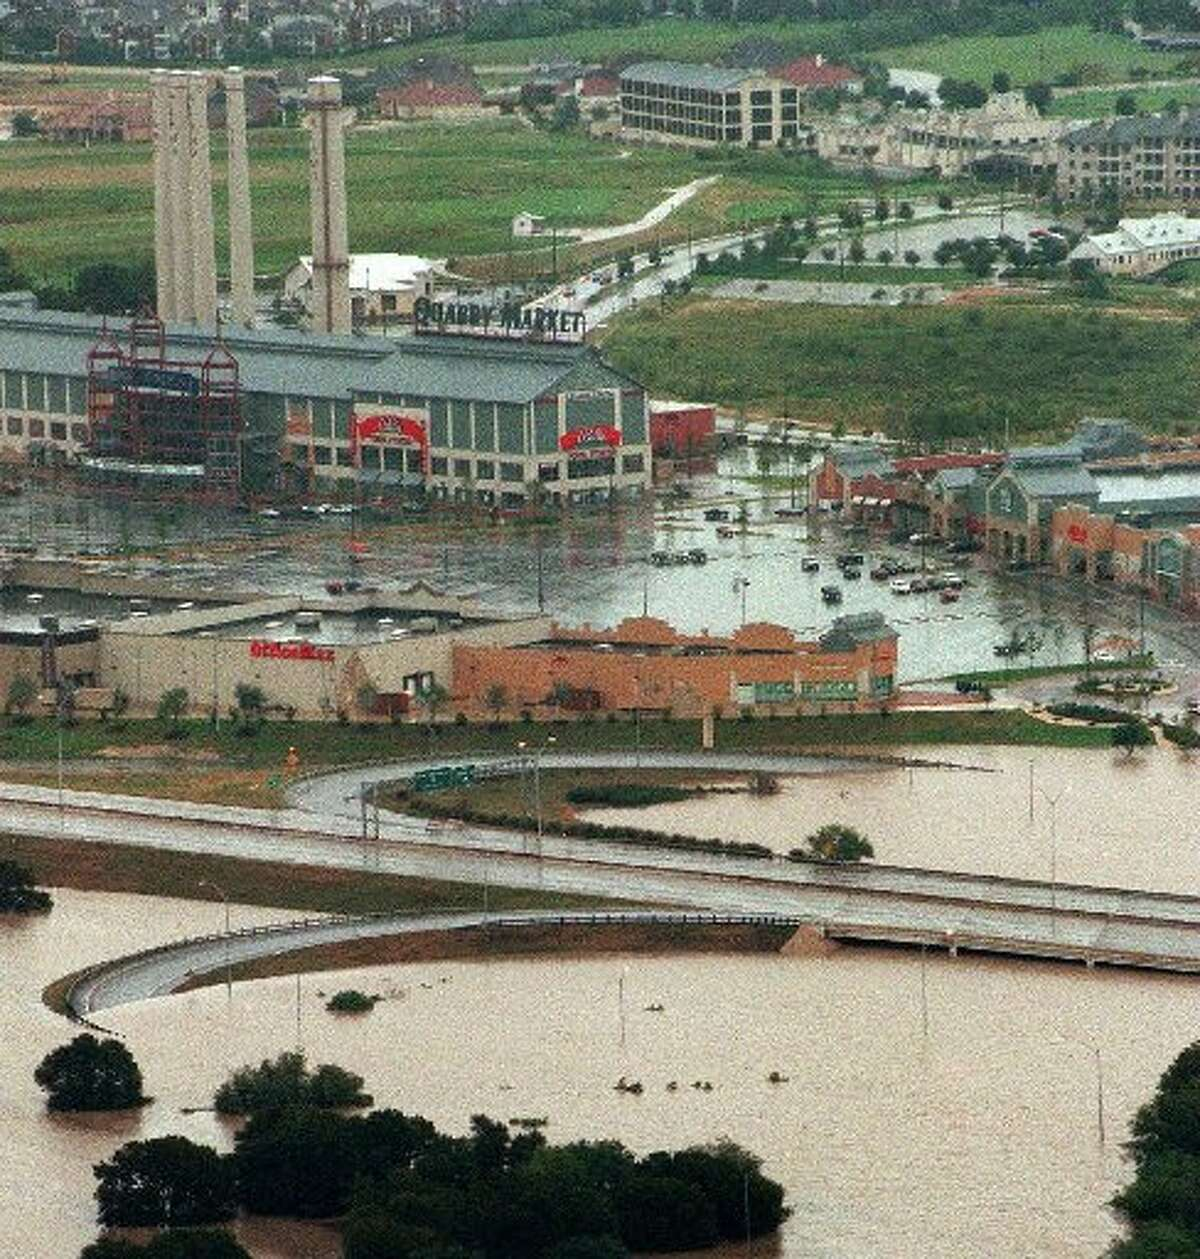 The intersection of Basse Road and Highway 281 is flooded in San Antonio, after storms closed several highways in the area Sunday, Oct. 18, 1998. Drenching storms swept through Texas killing twenty-nine people.